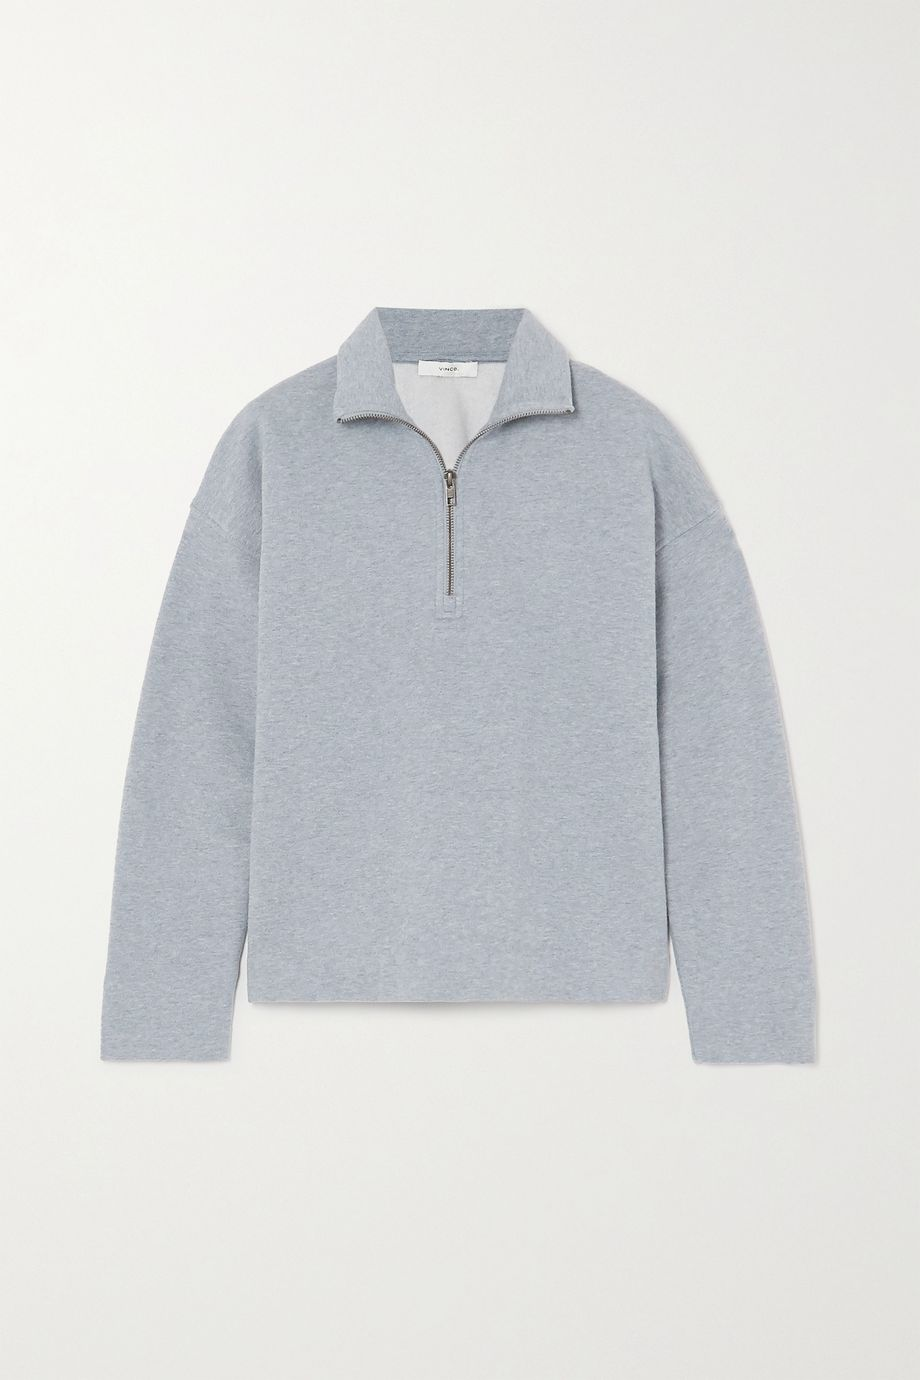 Vince Mélange cotton-blend jersey sweatshirt